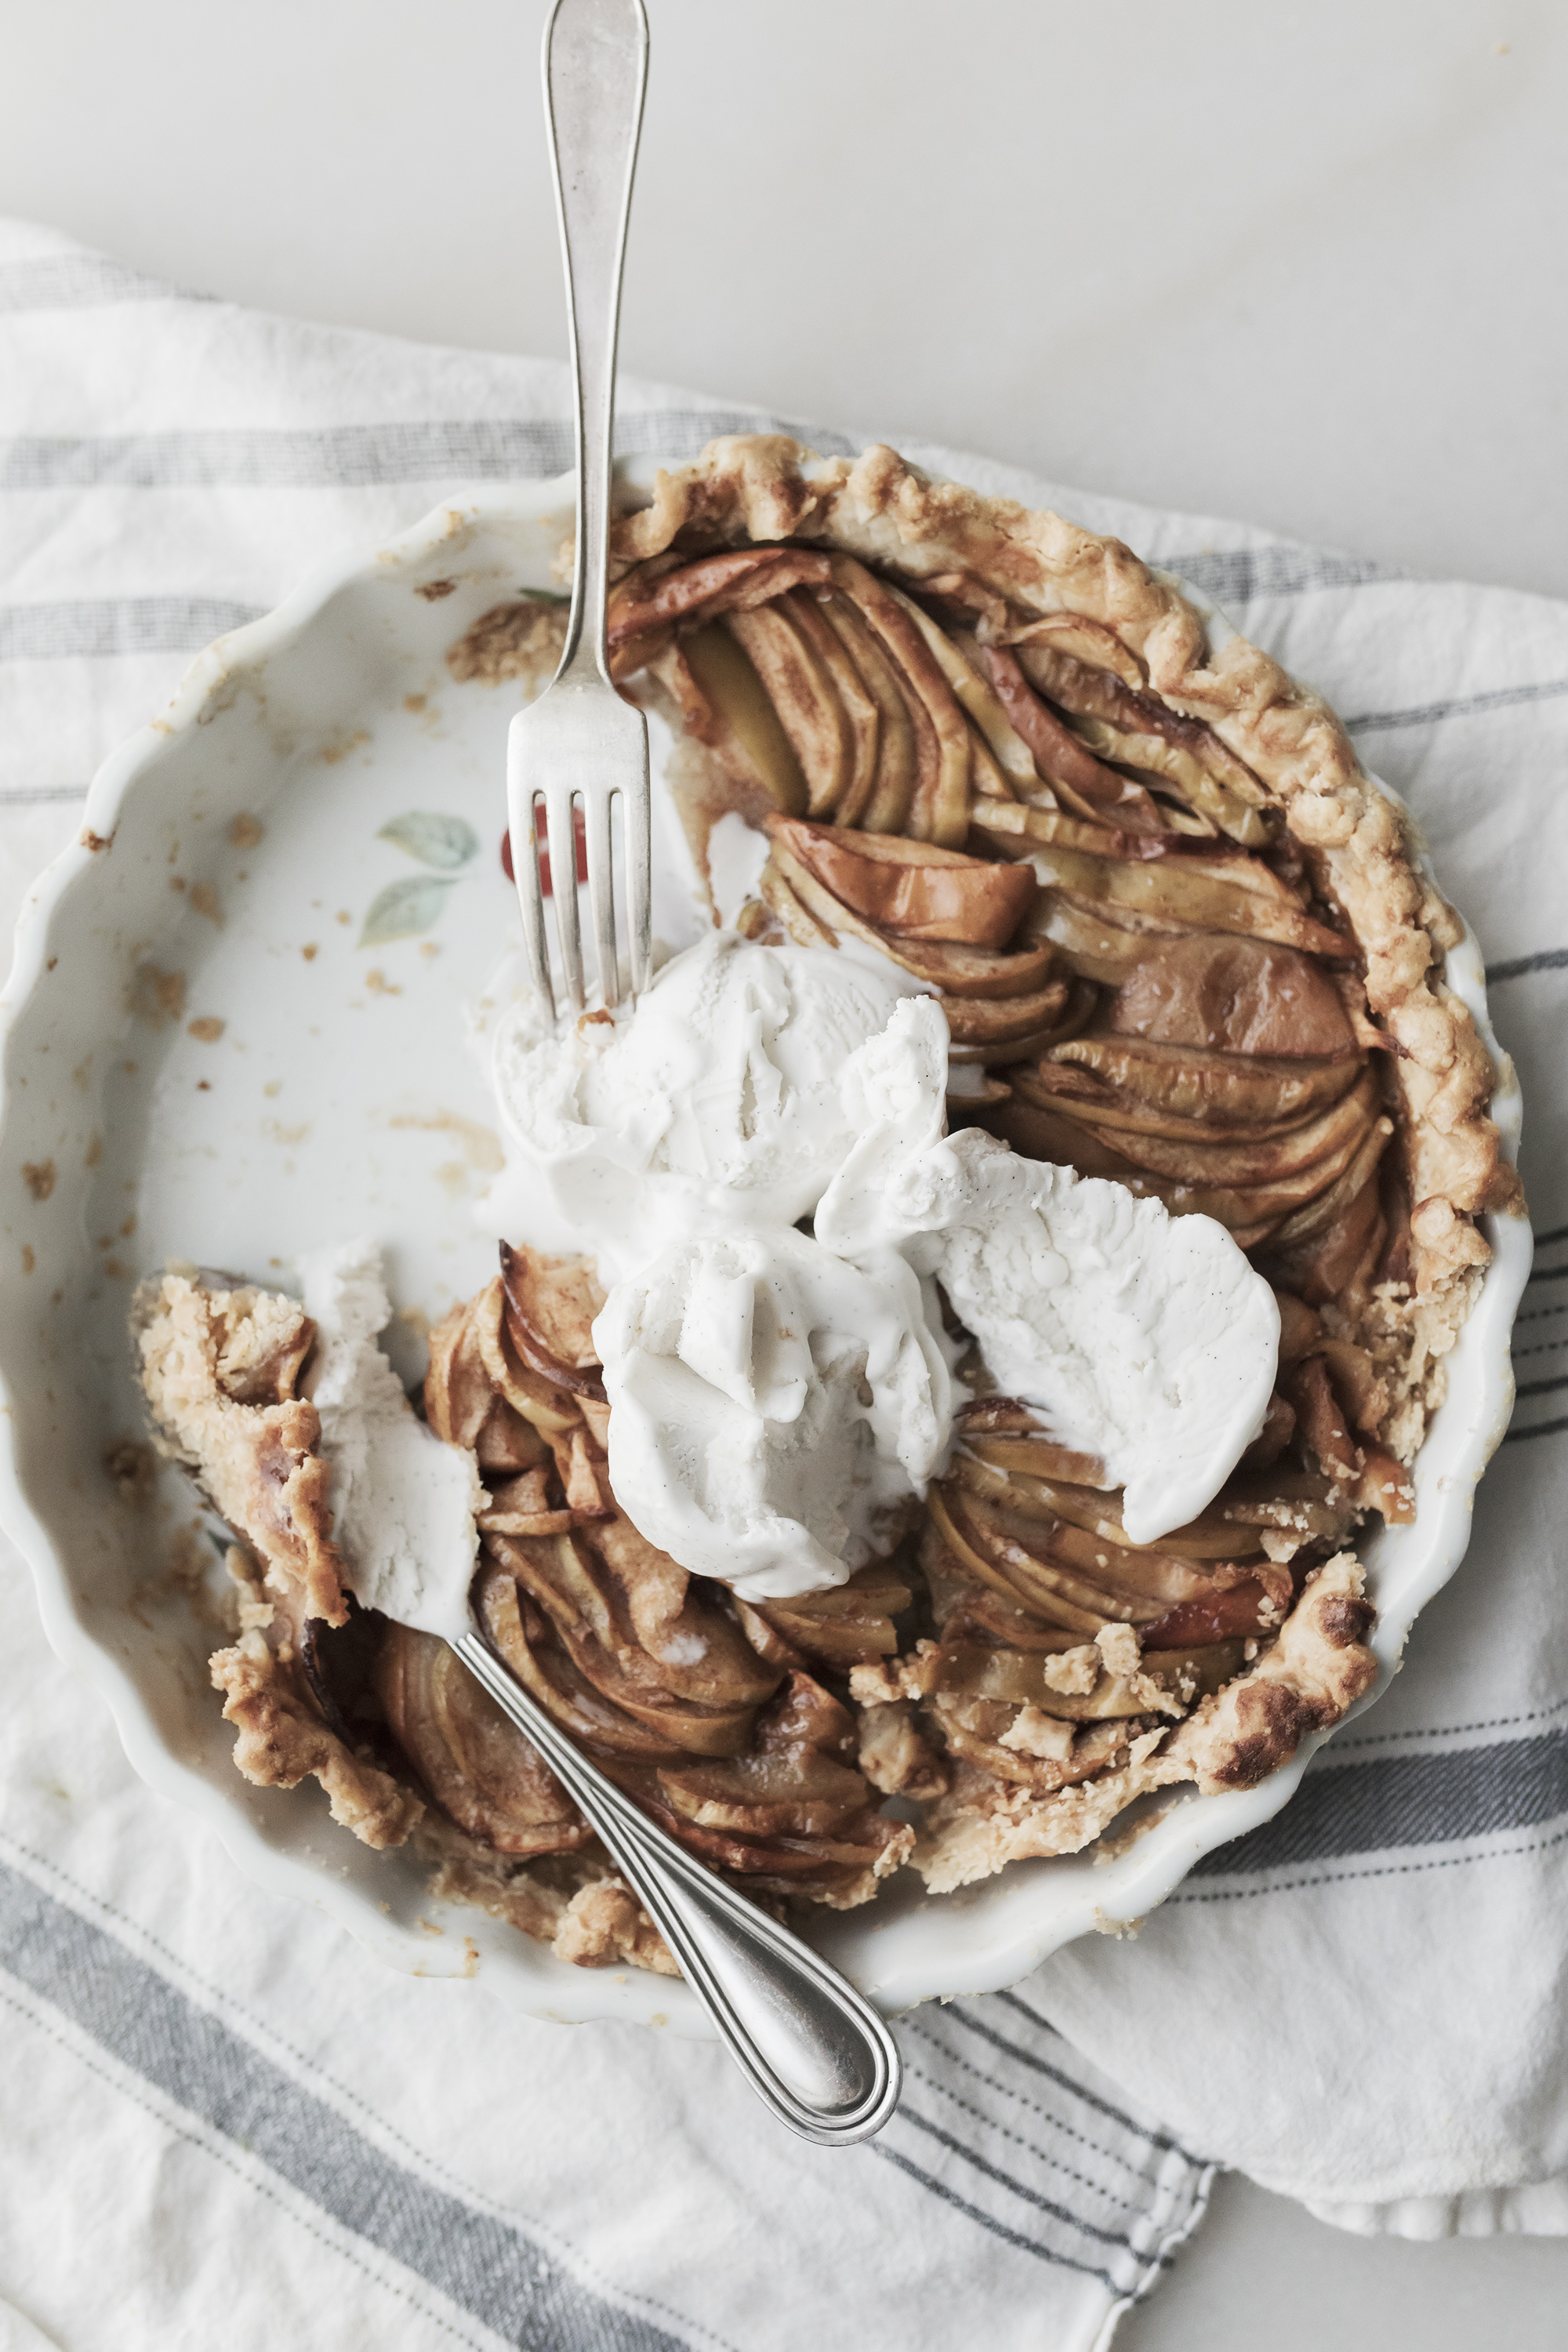 GLUTEN FREE APPLE TART RECIPE